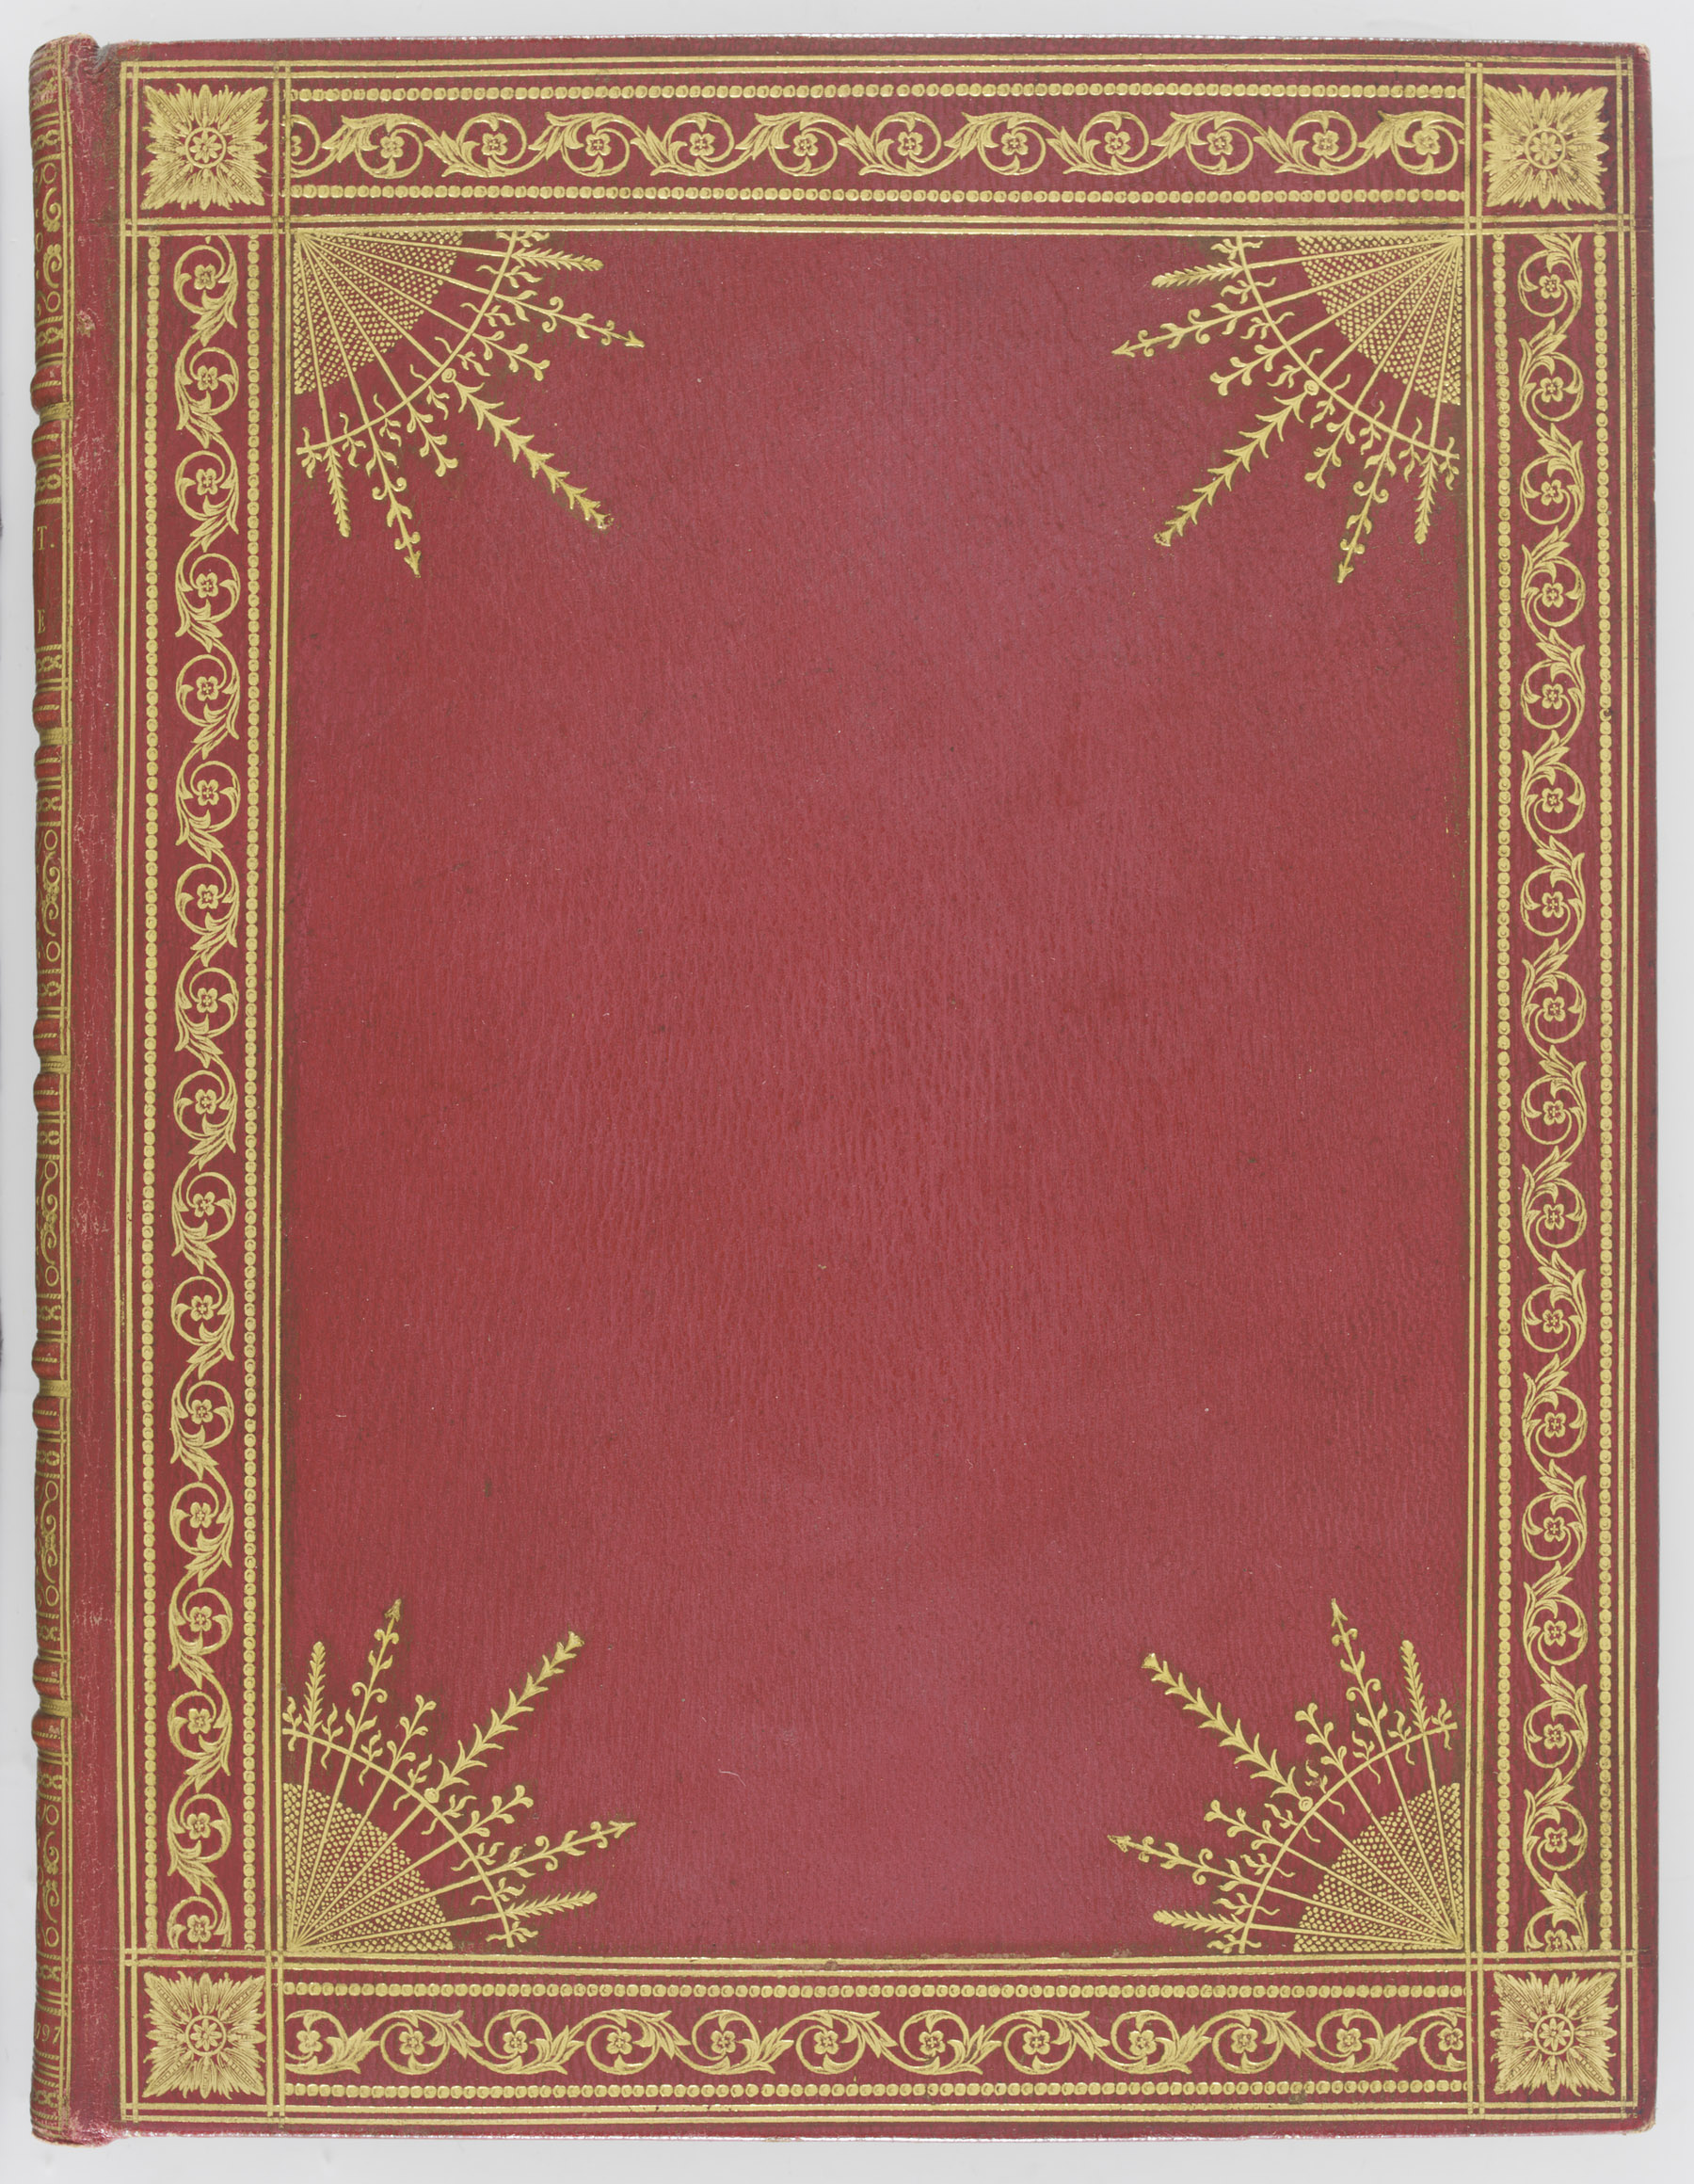 SEELEY, John. Stowe. A Description of the House and Gardens.  London: J. Edwards, 1797. 4° (245 x 185mm). Engraved title, 25 engraved plates, 6 engraved plans, one folding, double-page map. (Variable light spotting.) Contemporary red morocco by Christian Kalthoeber (with his orange label), covers with double gilt fillets and inner dotted roll bordering a repeated foliate scroll, star burst devices at corners, fan-shaped inner corner-pieces built up of various tools, gilt spine with double bands outlined with thick and thin gilt fillets, lettered in one panel, the others elaborately tooled, gilt turn-ins, marbled endpapers, gilded, silk marker (extremities faintly rubbed). Provenance: William Beckford (neat ms. note to verso of front endpaper, and printed catalogue entry on pastedown from the Hamilton Palace sale part III, Sotheby's 11 July 1883, lot 1876) -- Archibald Rosebery (book label; sold at Sotheby's 28 October 1975, lot 374).